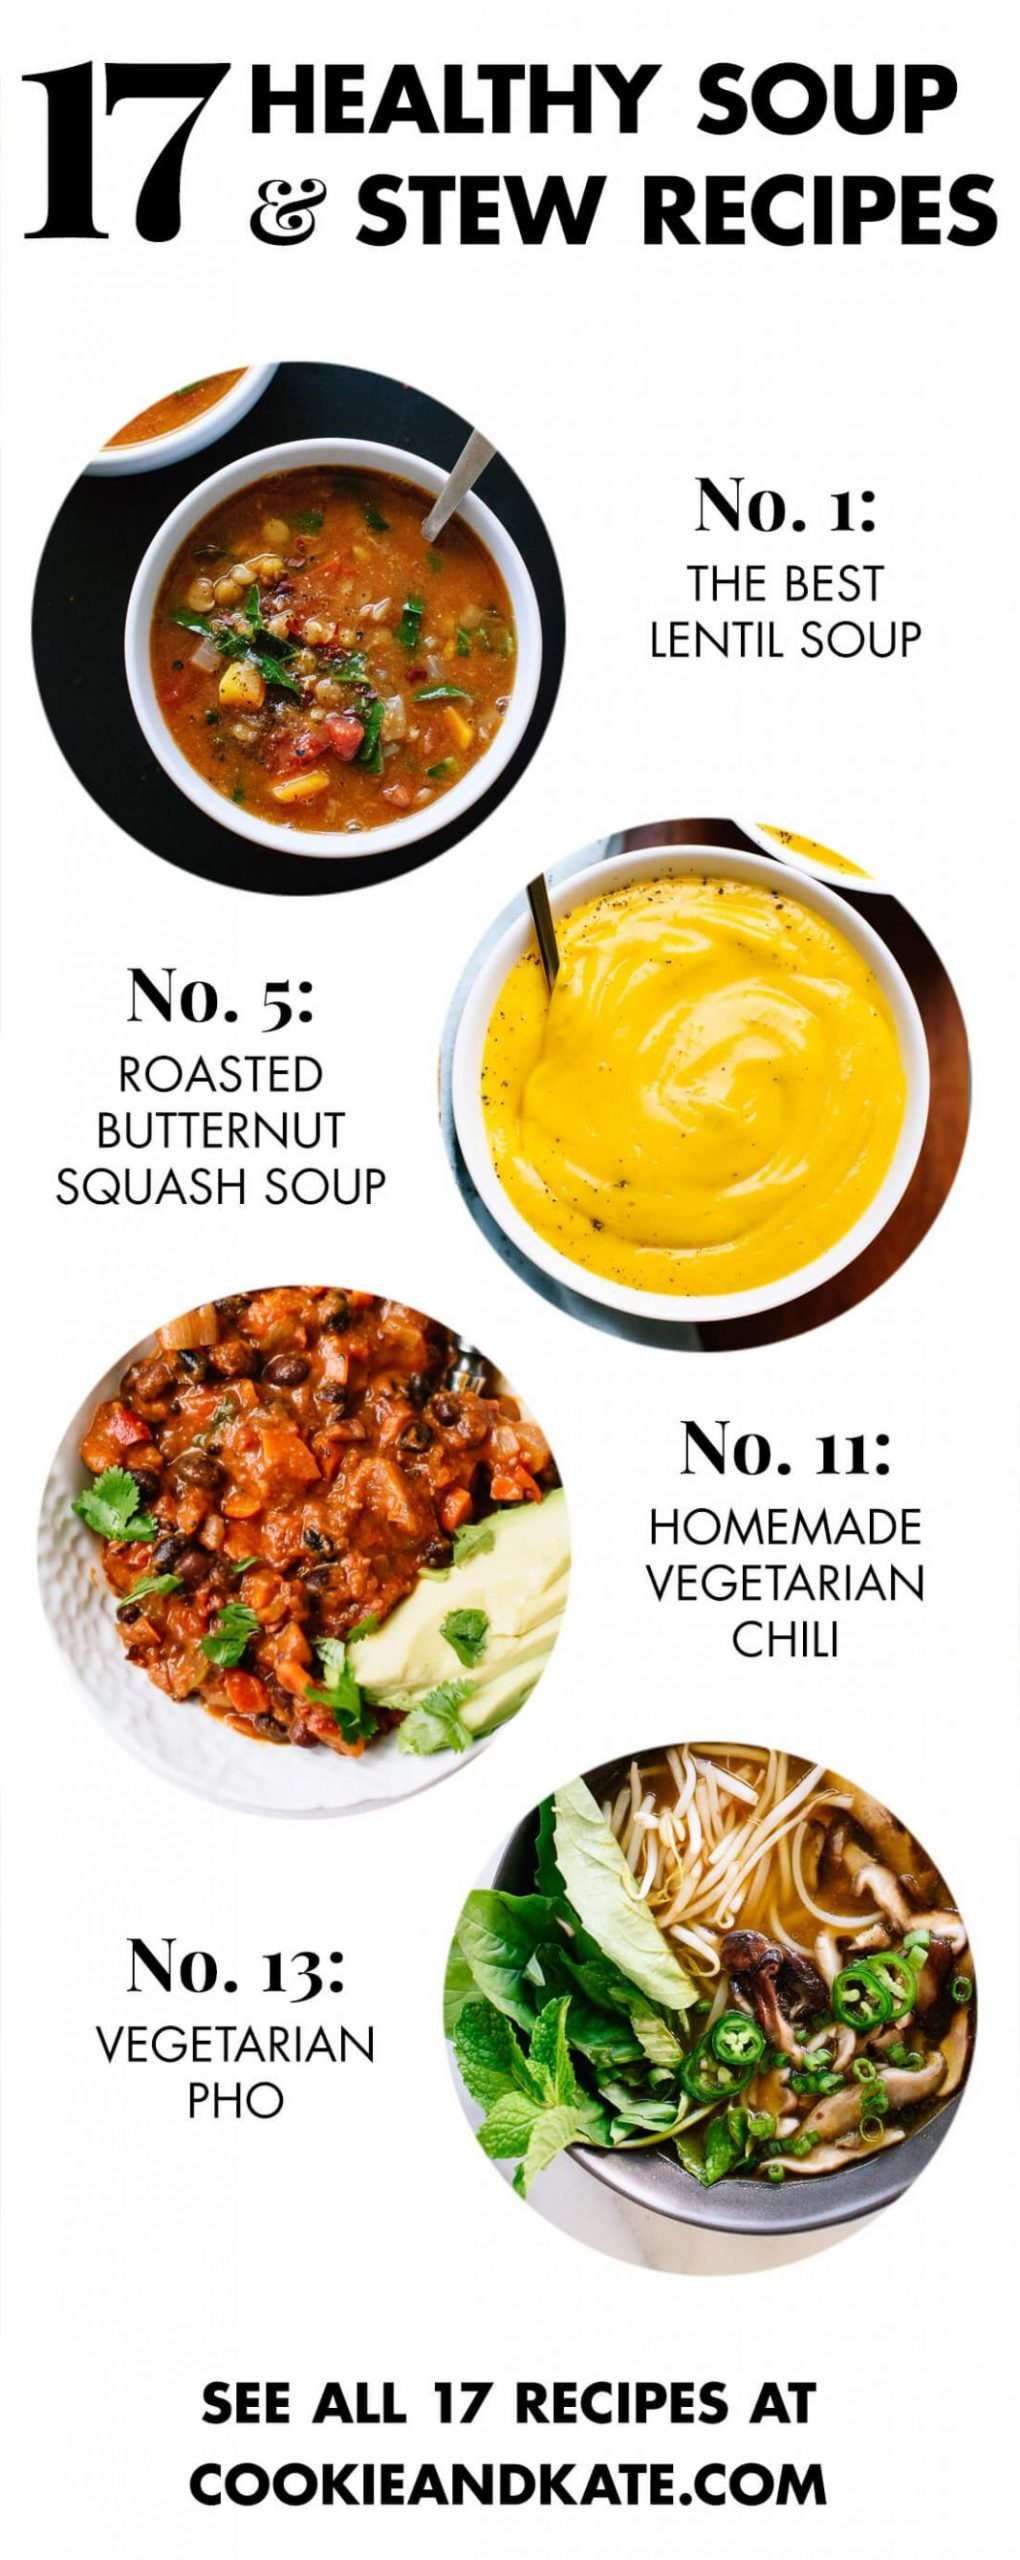 11 Healthy Vegetarian Soup Recipes - Cookie and Kate